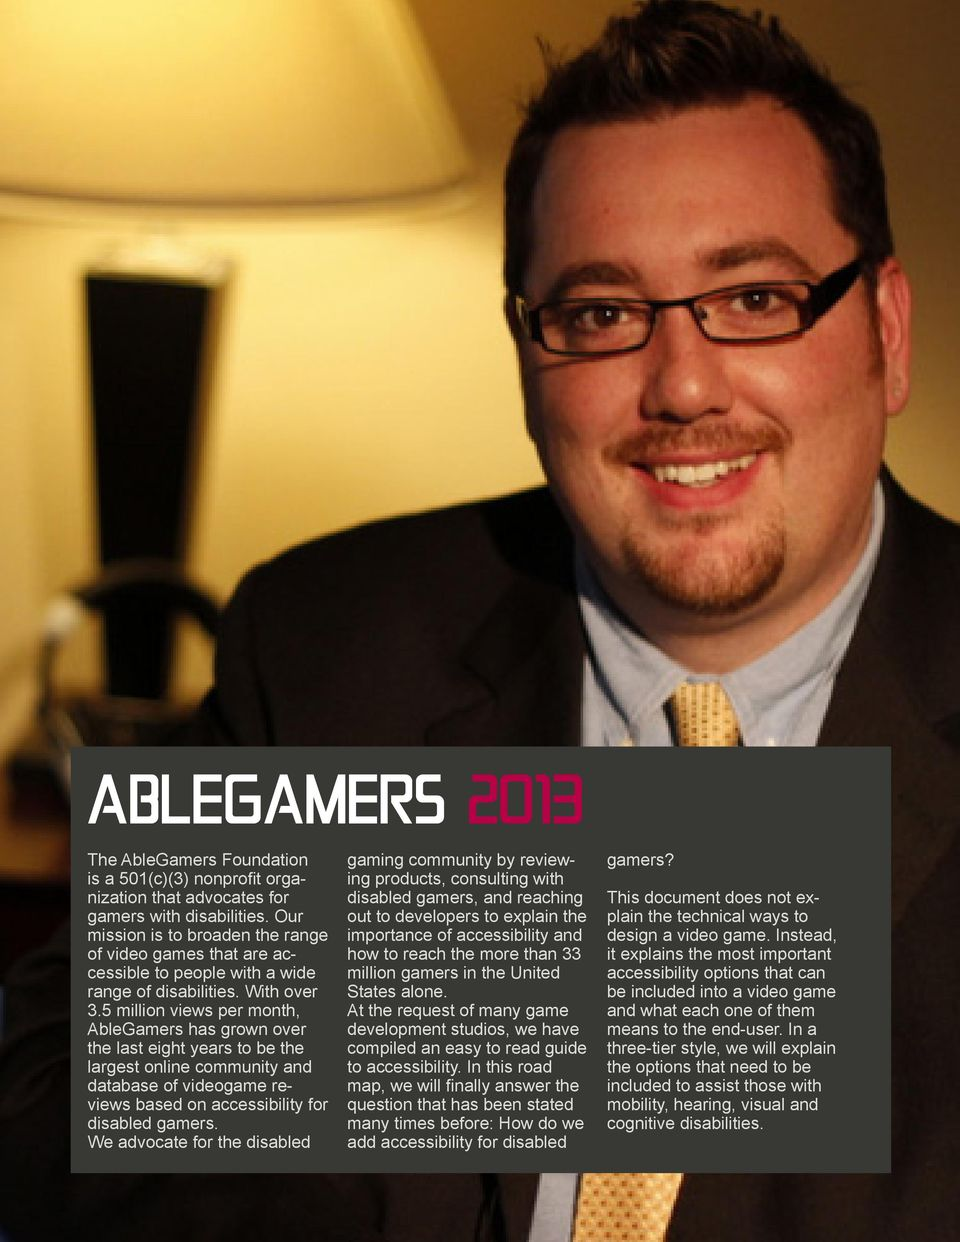 5 million views per month, AbleGamers has grown over the last eight years to be the largest online community and database of videogame reviews based on accessibility for disabled gamers.